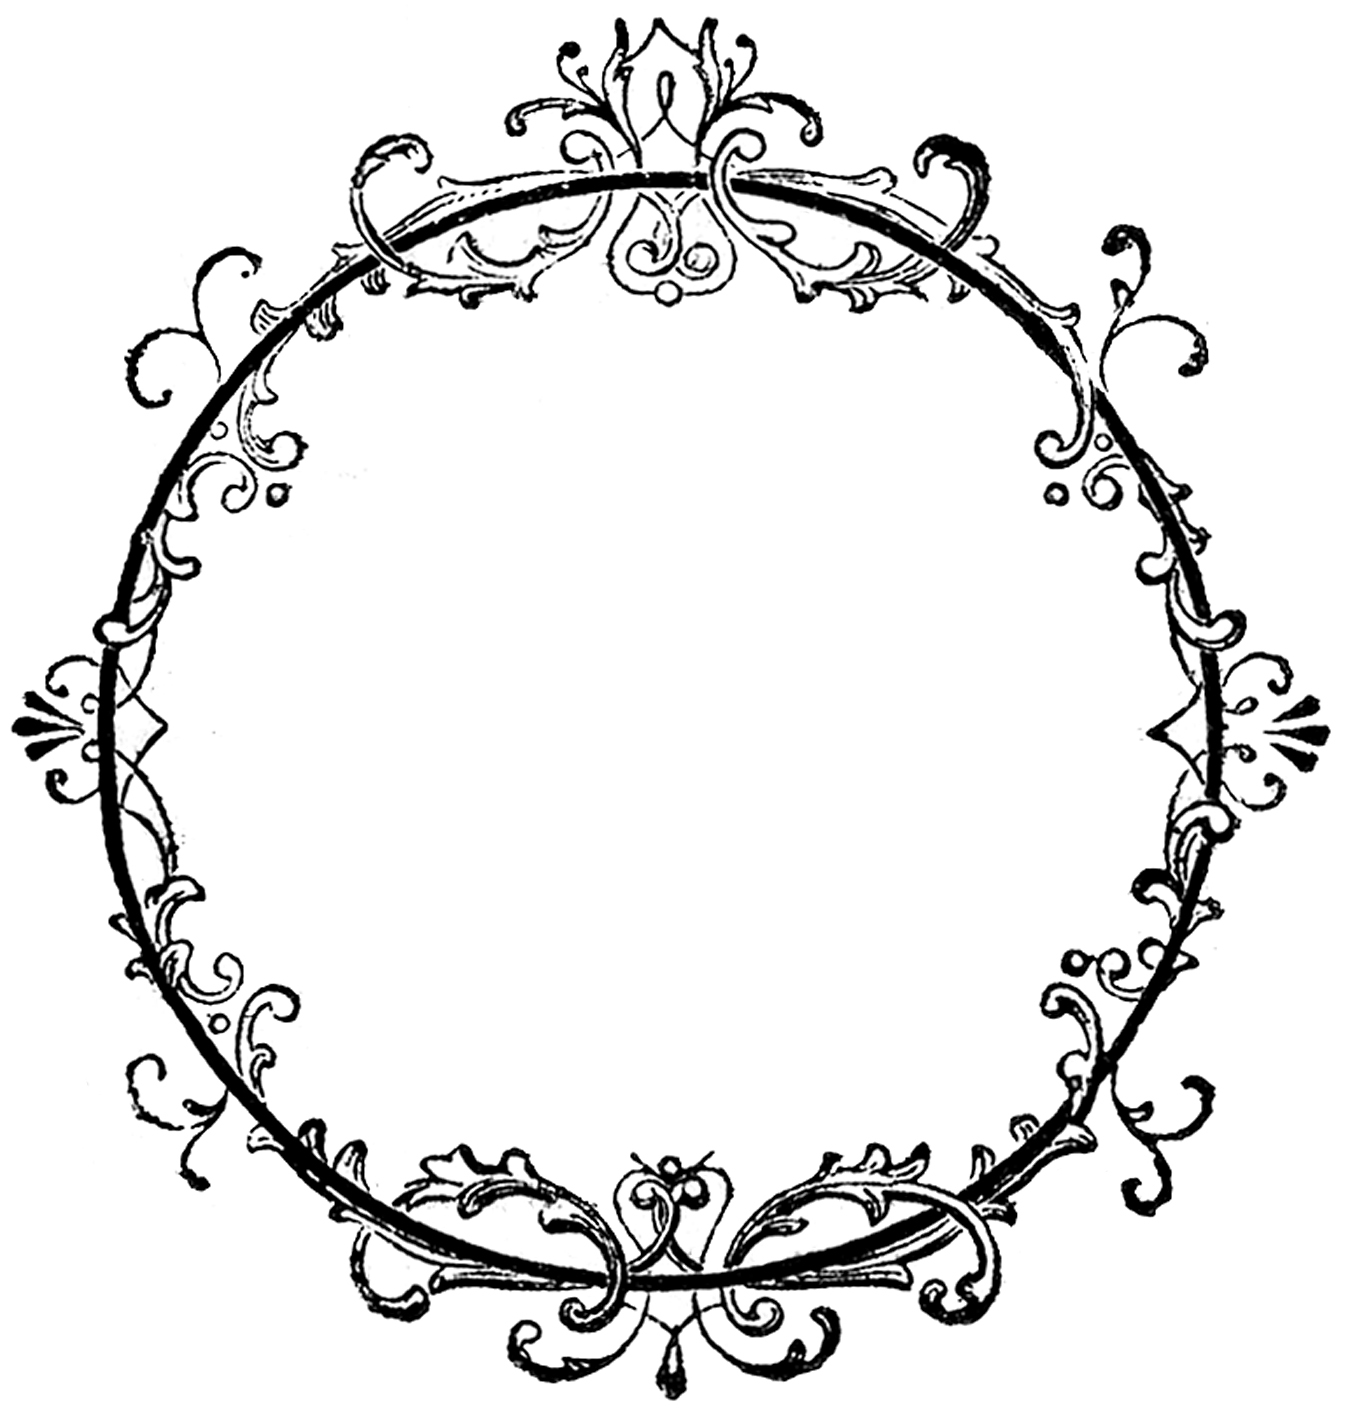 27df0c228c15 23 Frame Clipart - Fancy and Ornate - The Graphics Fairy